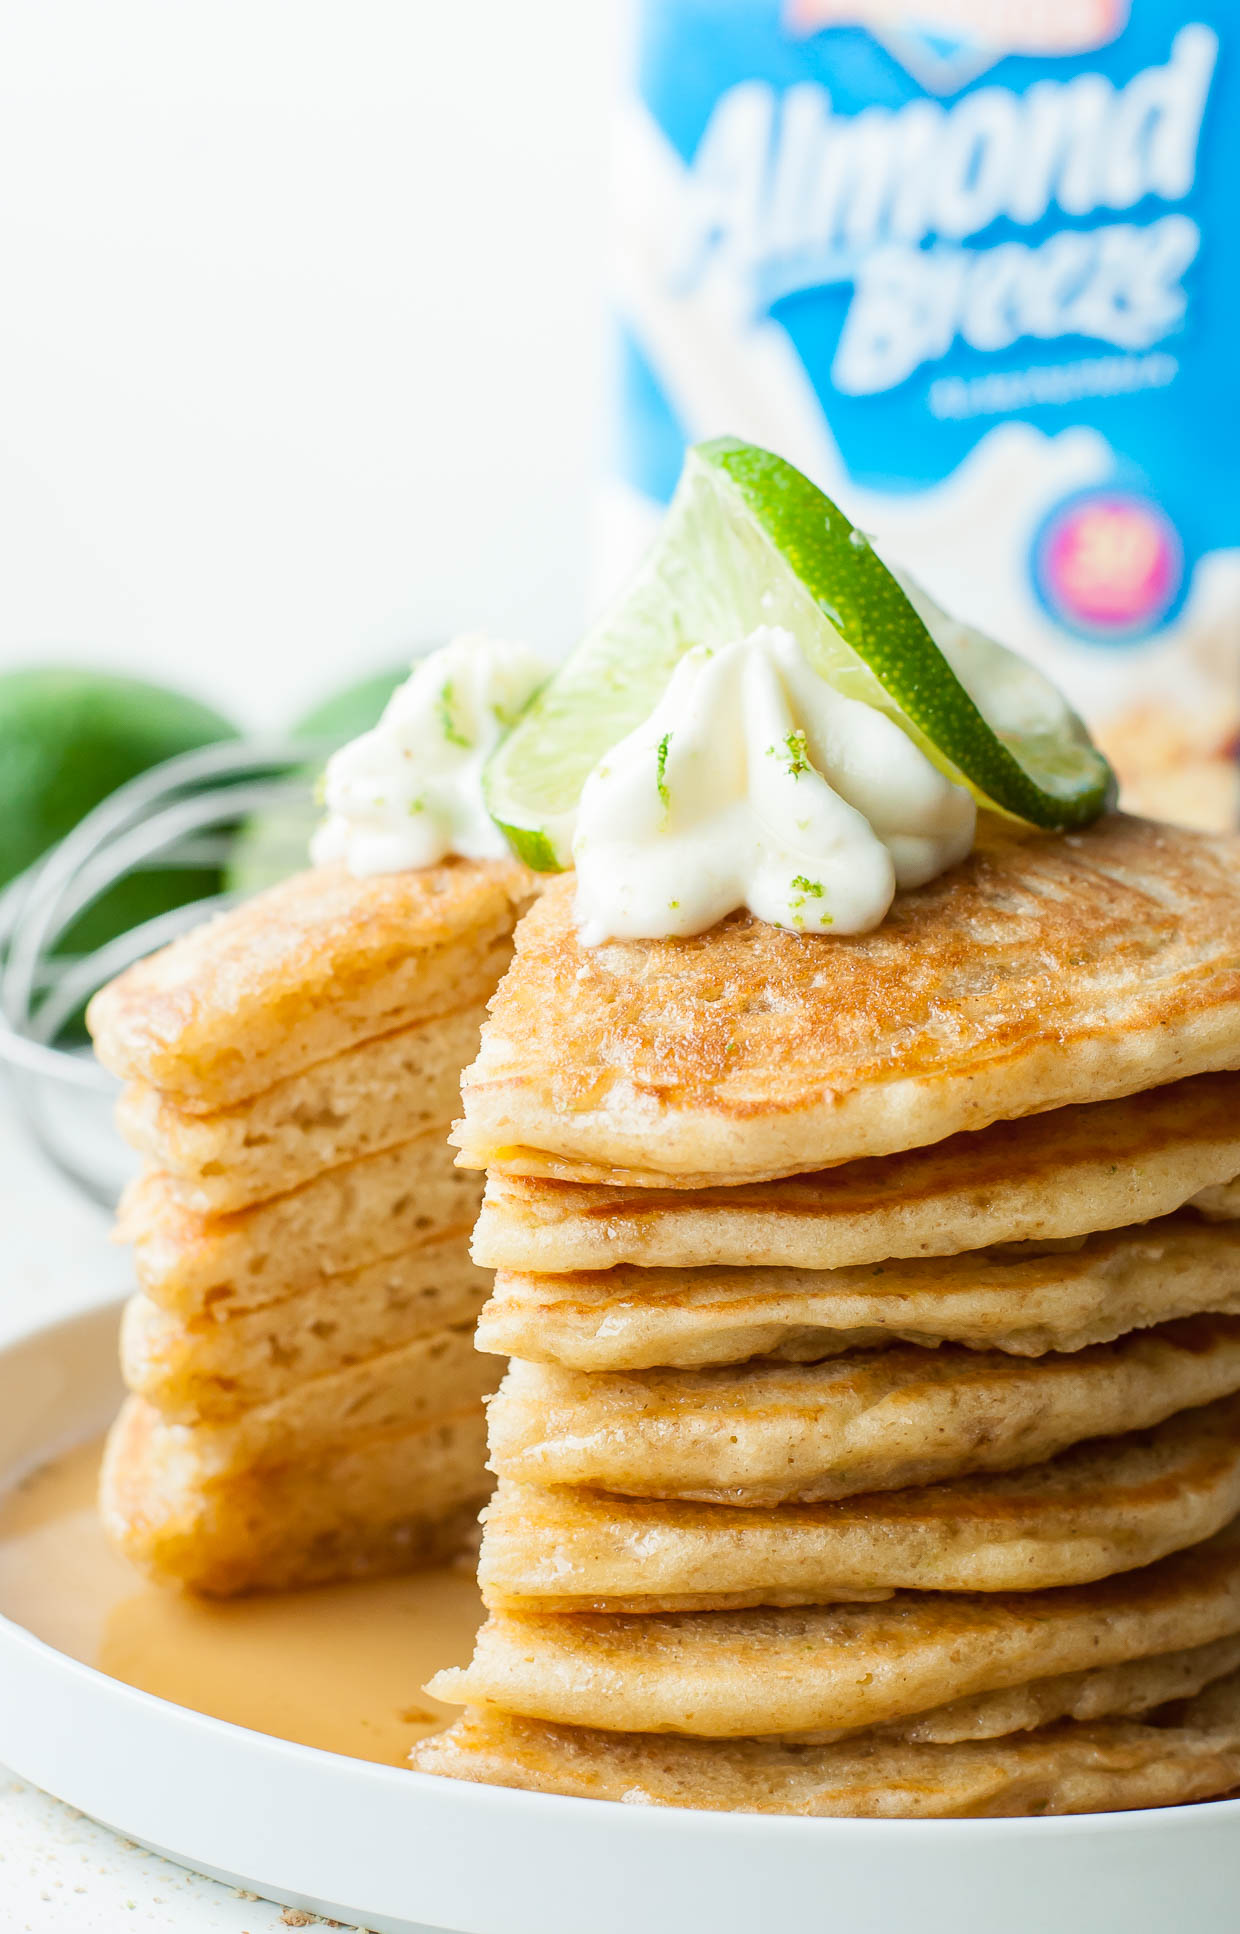 Ultra fluffy and bursting with flavor, these tasty Key Lime Pie Pancakes are guaranteed to transform breakfast into the BEST meal of the day!